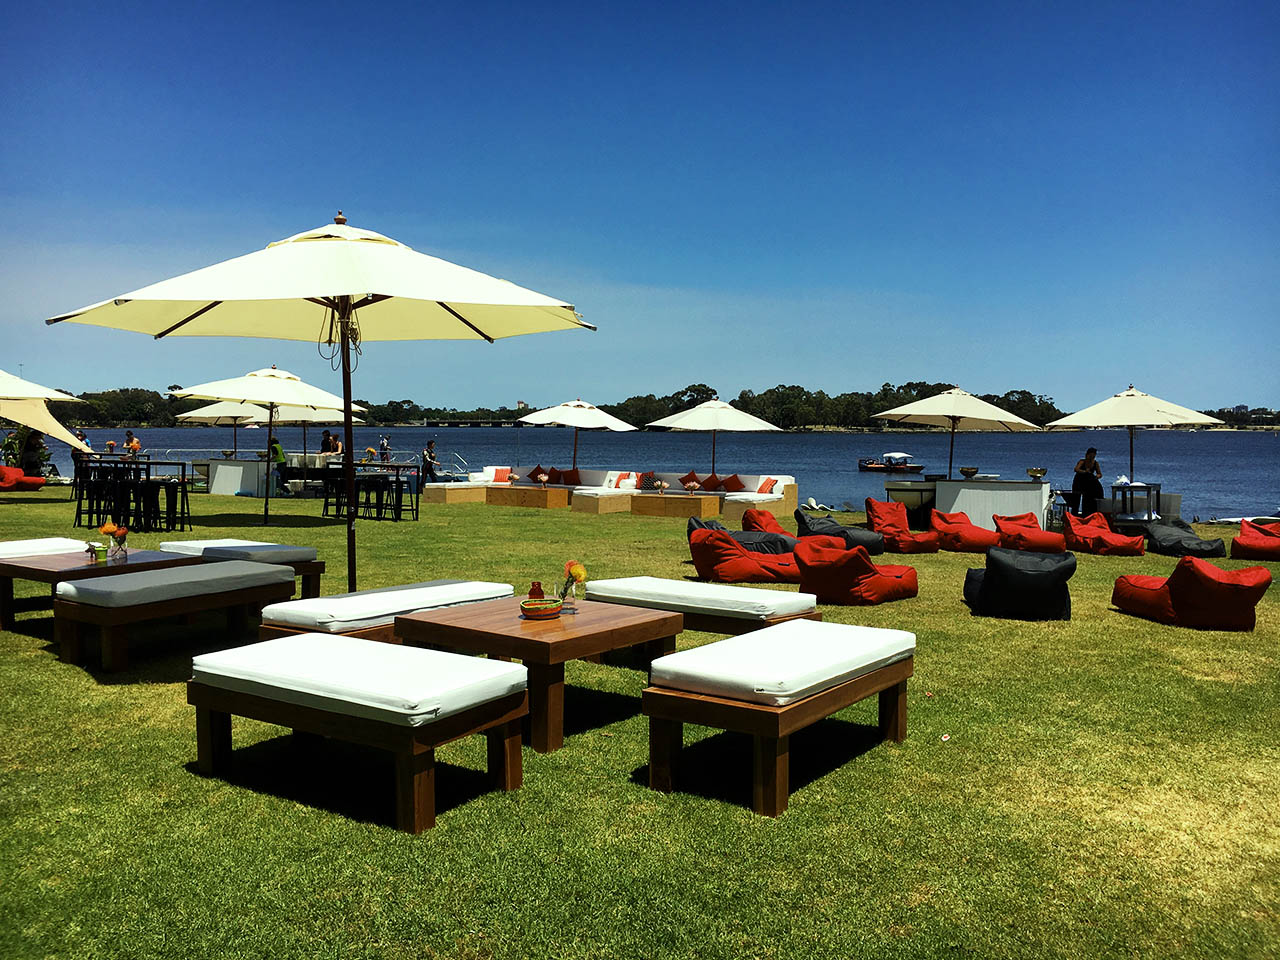 Wooden settees with white cushions underneath sun umbrellas. Swan river and trees fill the back drop